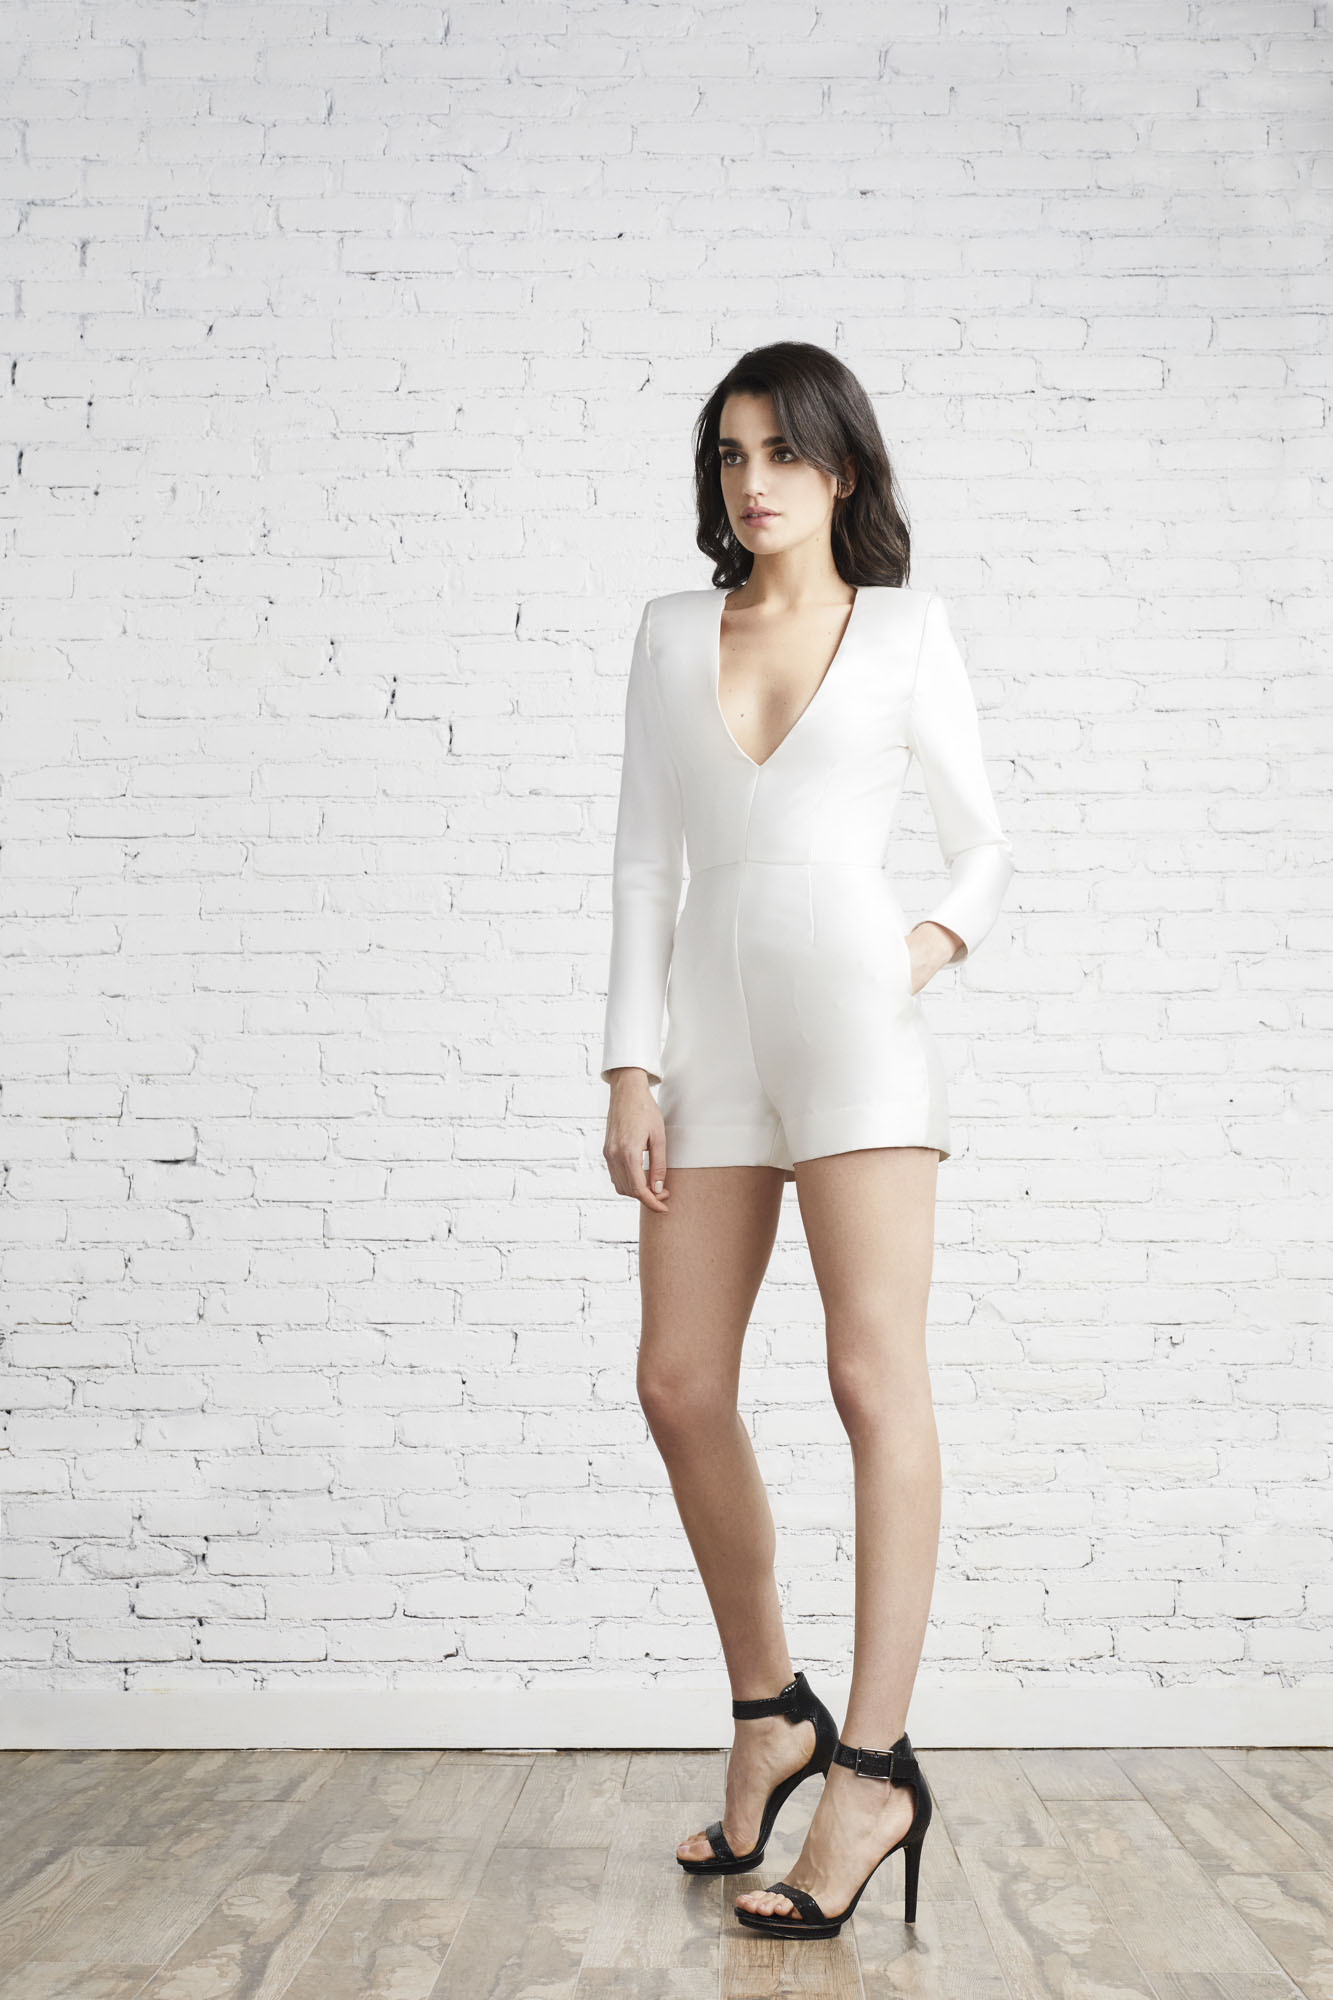 The Kayla long sleeve romper featuring a plunging neckline and custom Italian Neoprene will be worn again well after the wedding day.